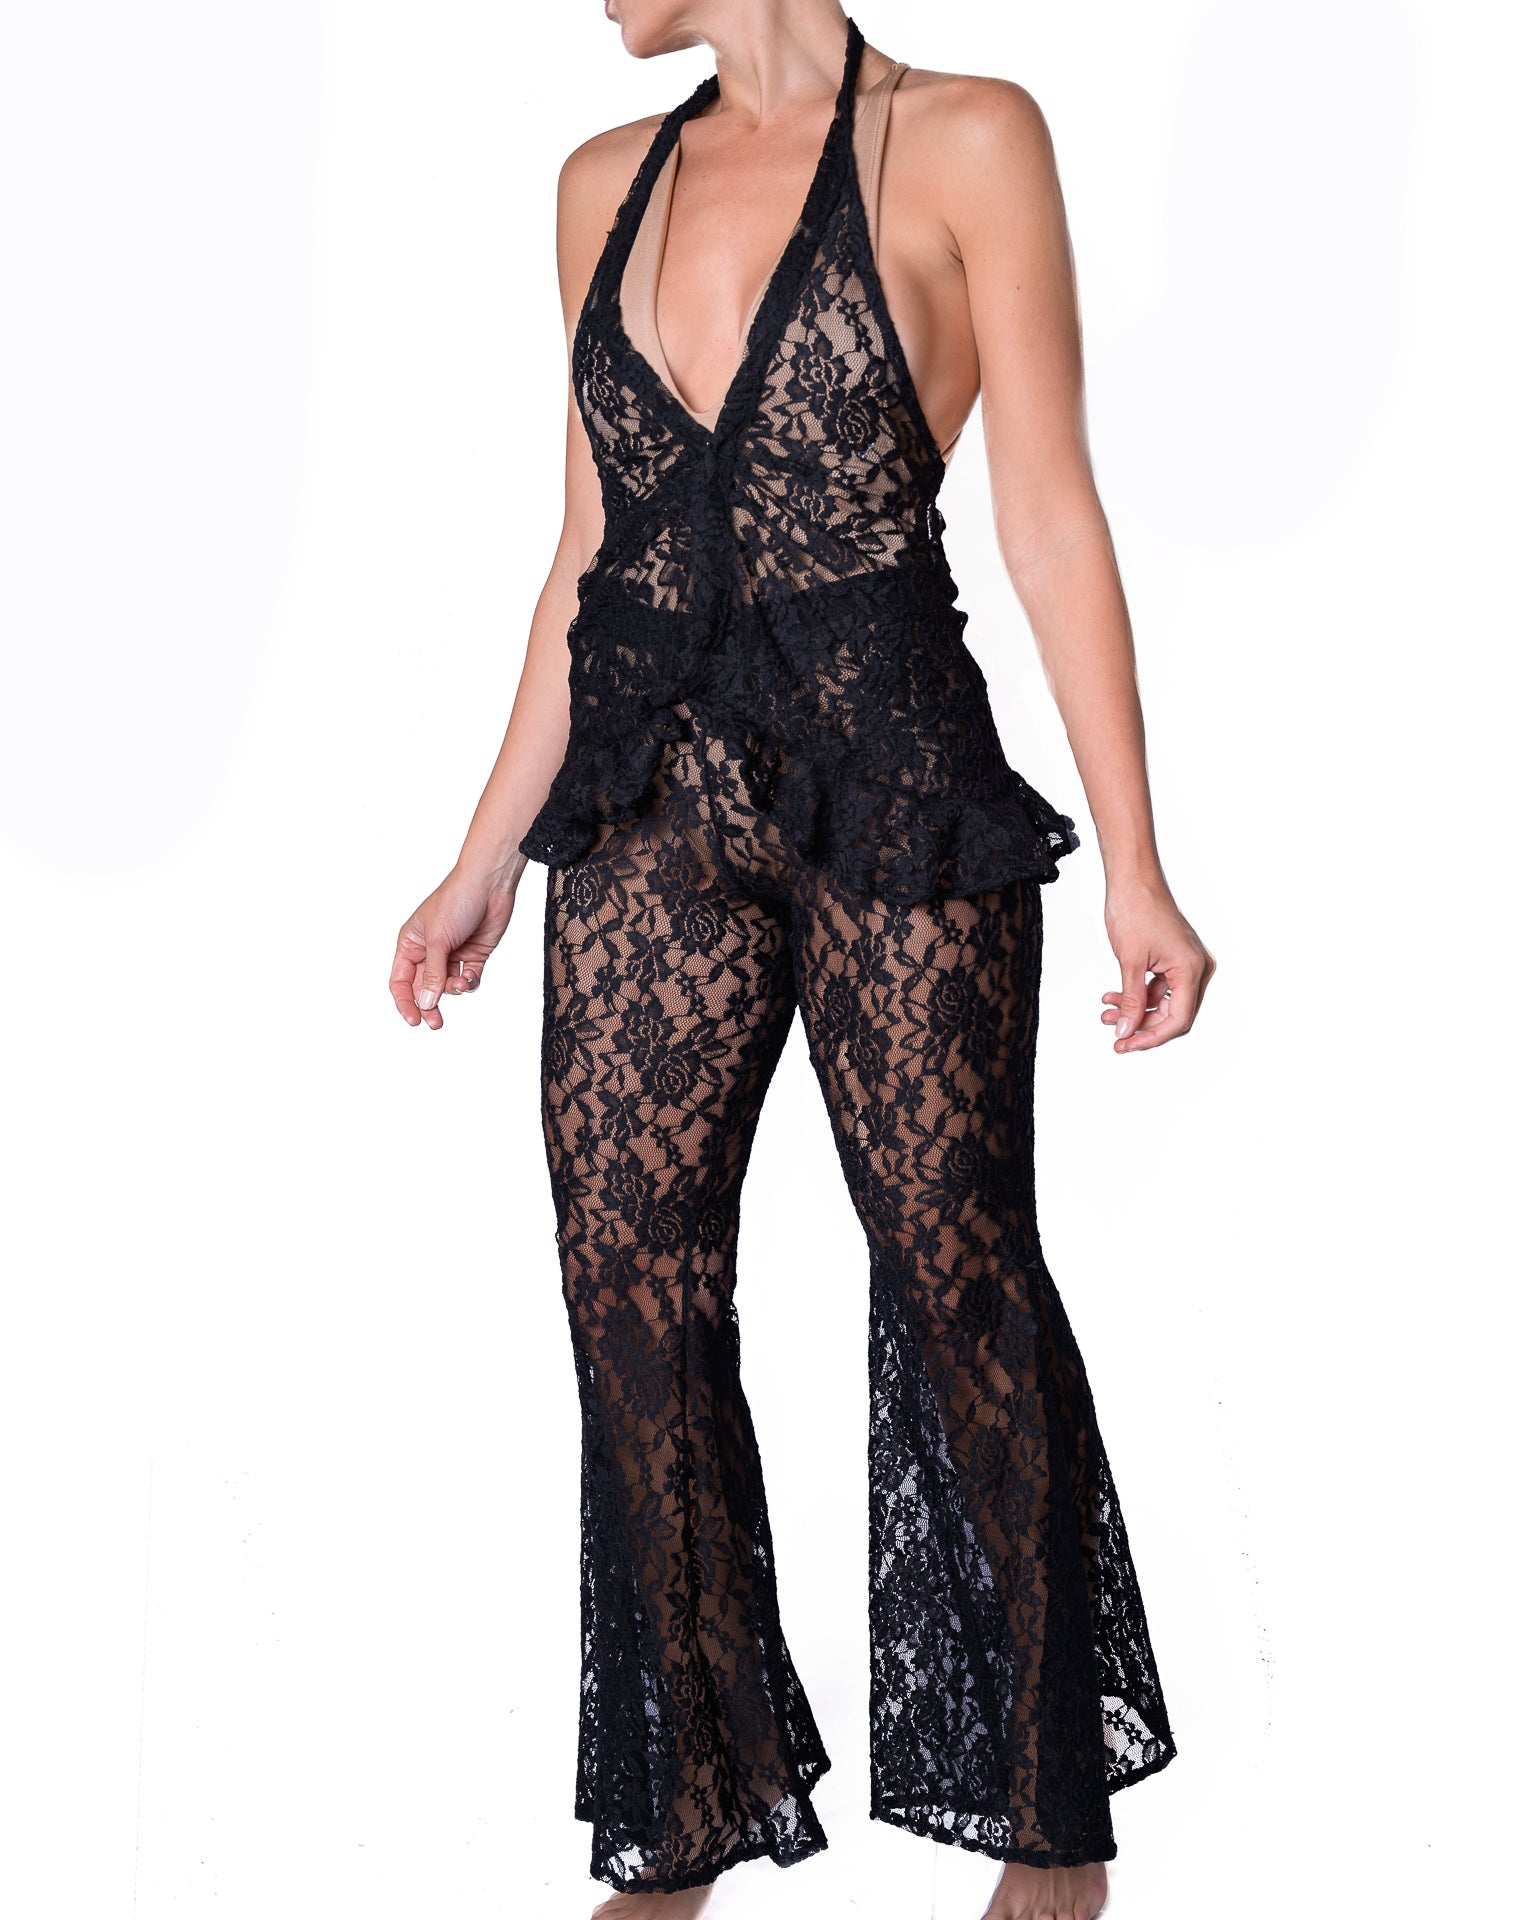 Antigua Isabella Top Black Lace